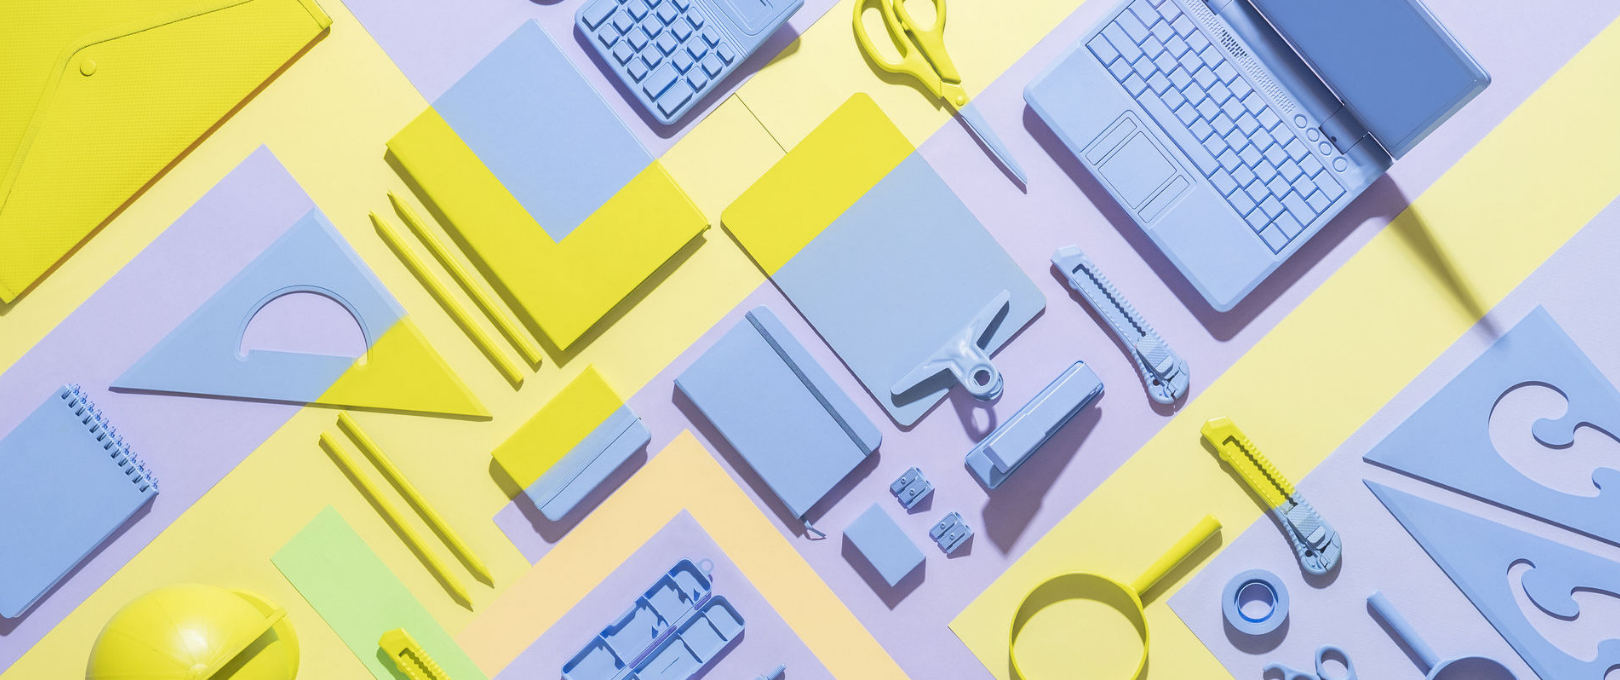 Save Time, Simplify, Scale: Shopify's Biggest Product Updates in 2018